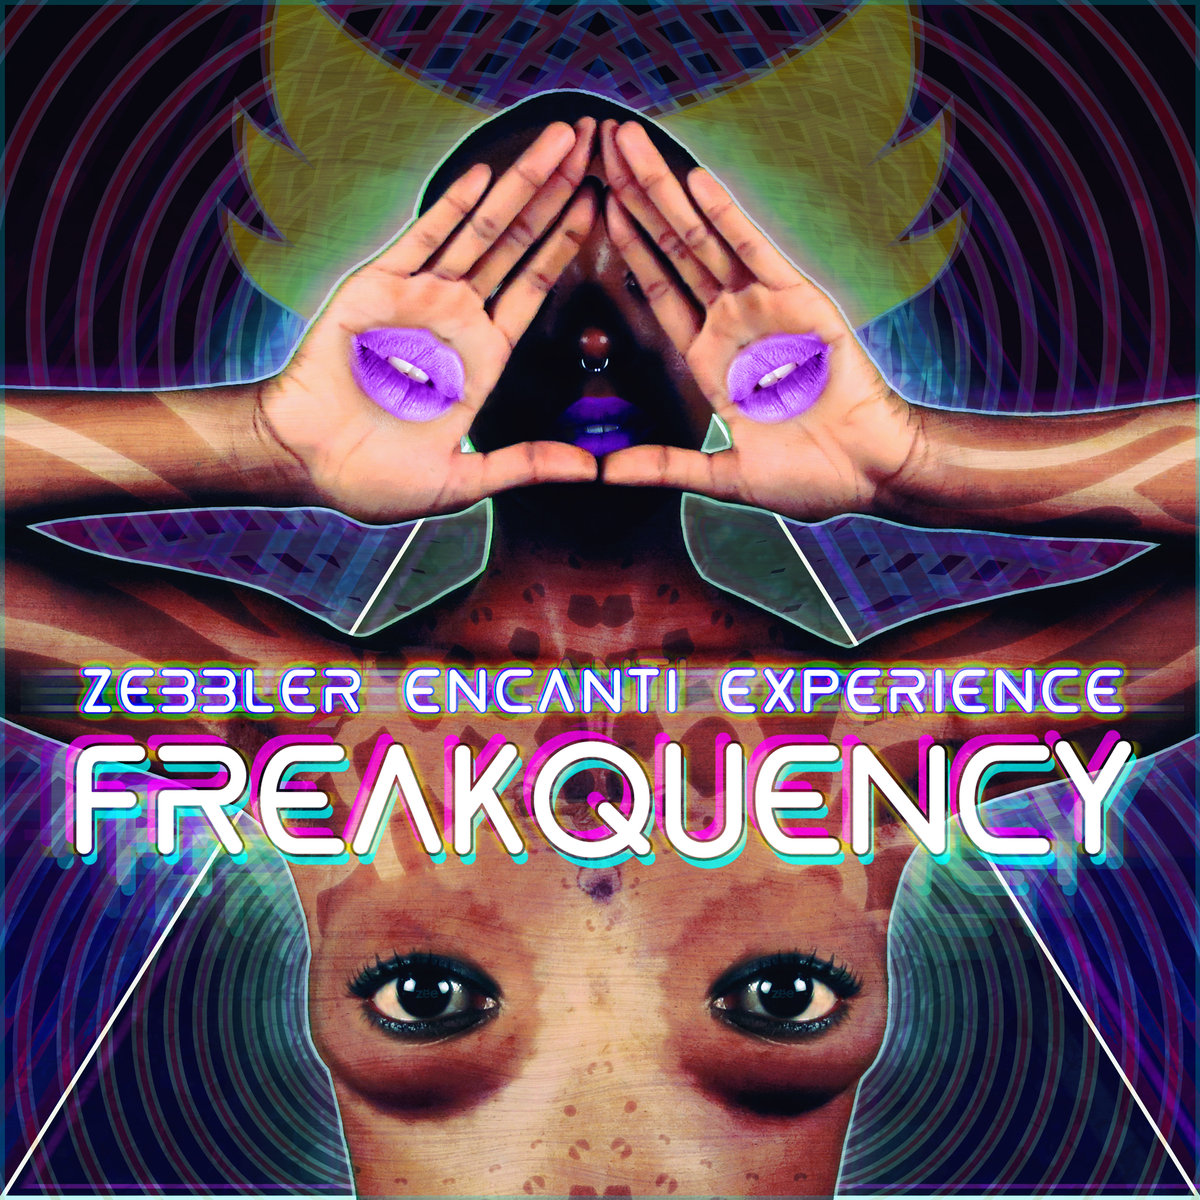 Zebbler Encanti Experience - Follow The Bubbles @ 'Freakquency' album (boston, psychedelic)